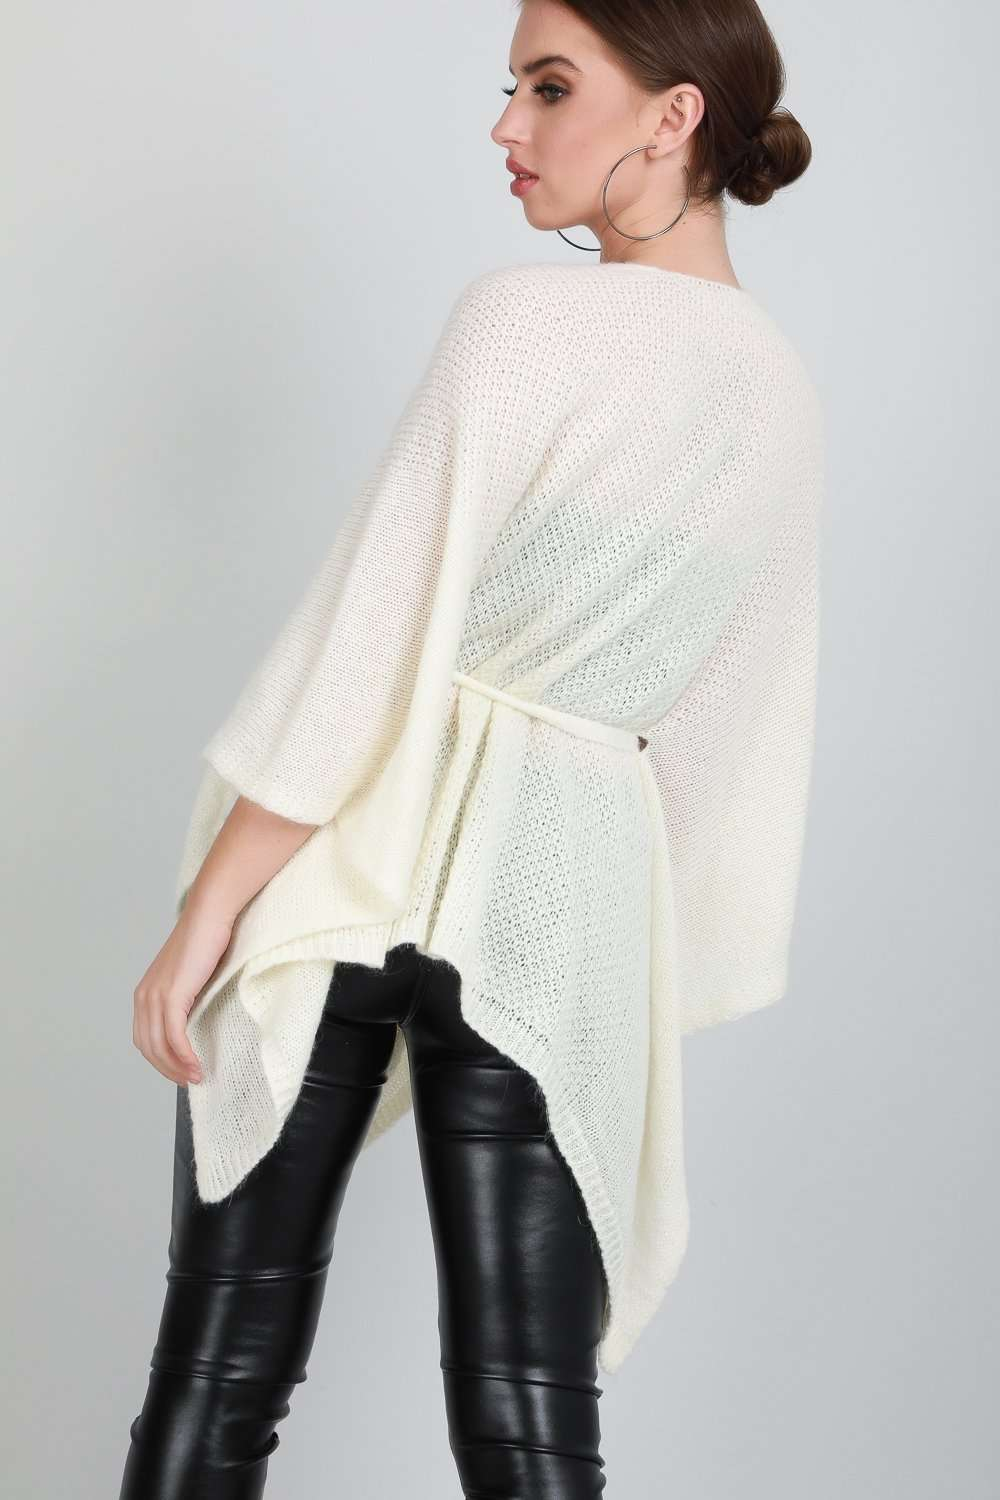 Kelsi Draped Waterfall Belted Cardigan Shawl - bejealous-com